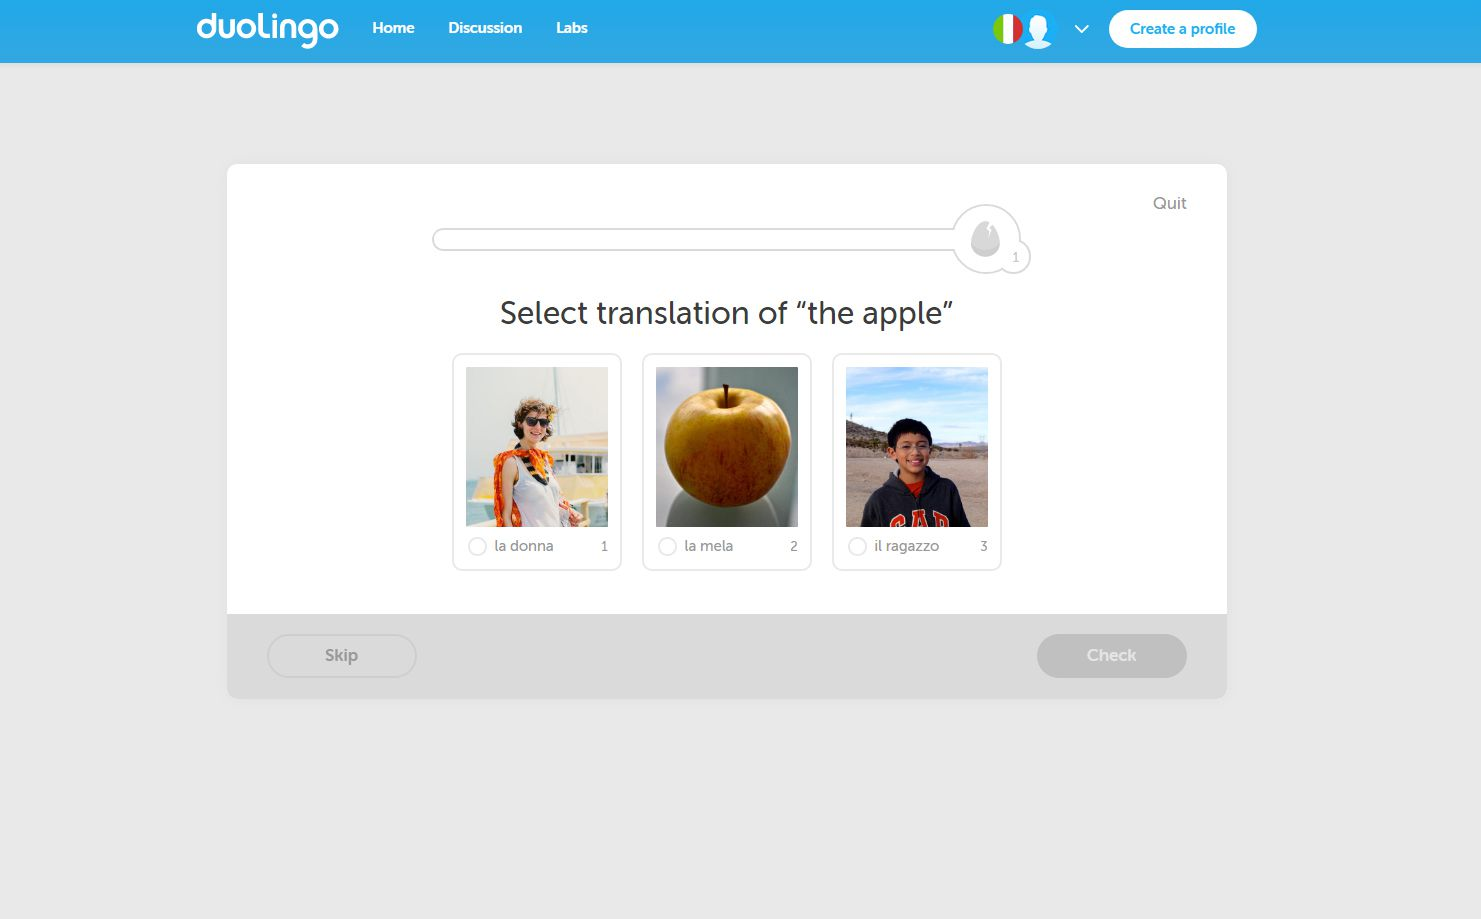 11 free powerpoint game templates for the classroom learn a new language online for free using duolingo alramifo Images